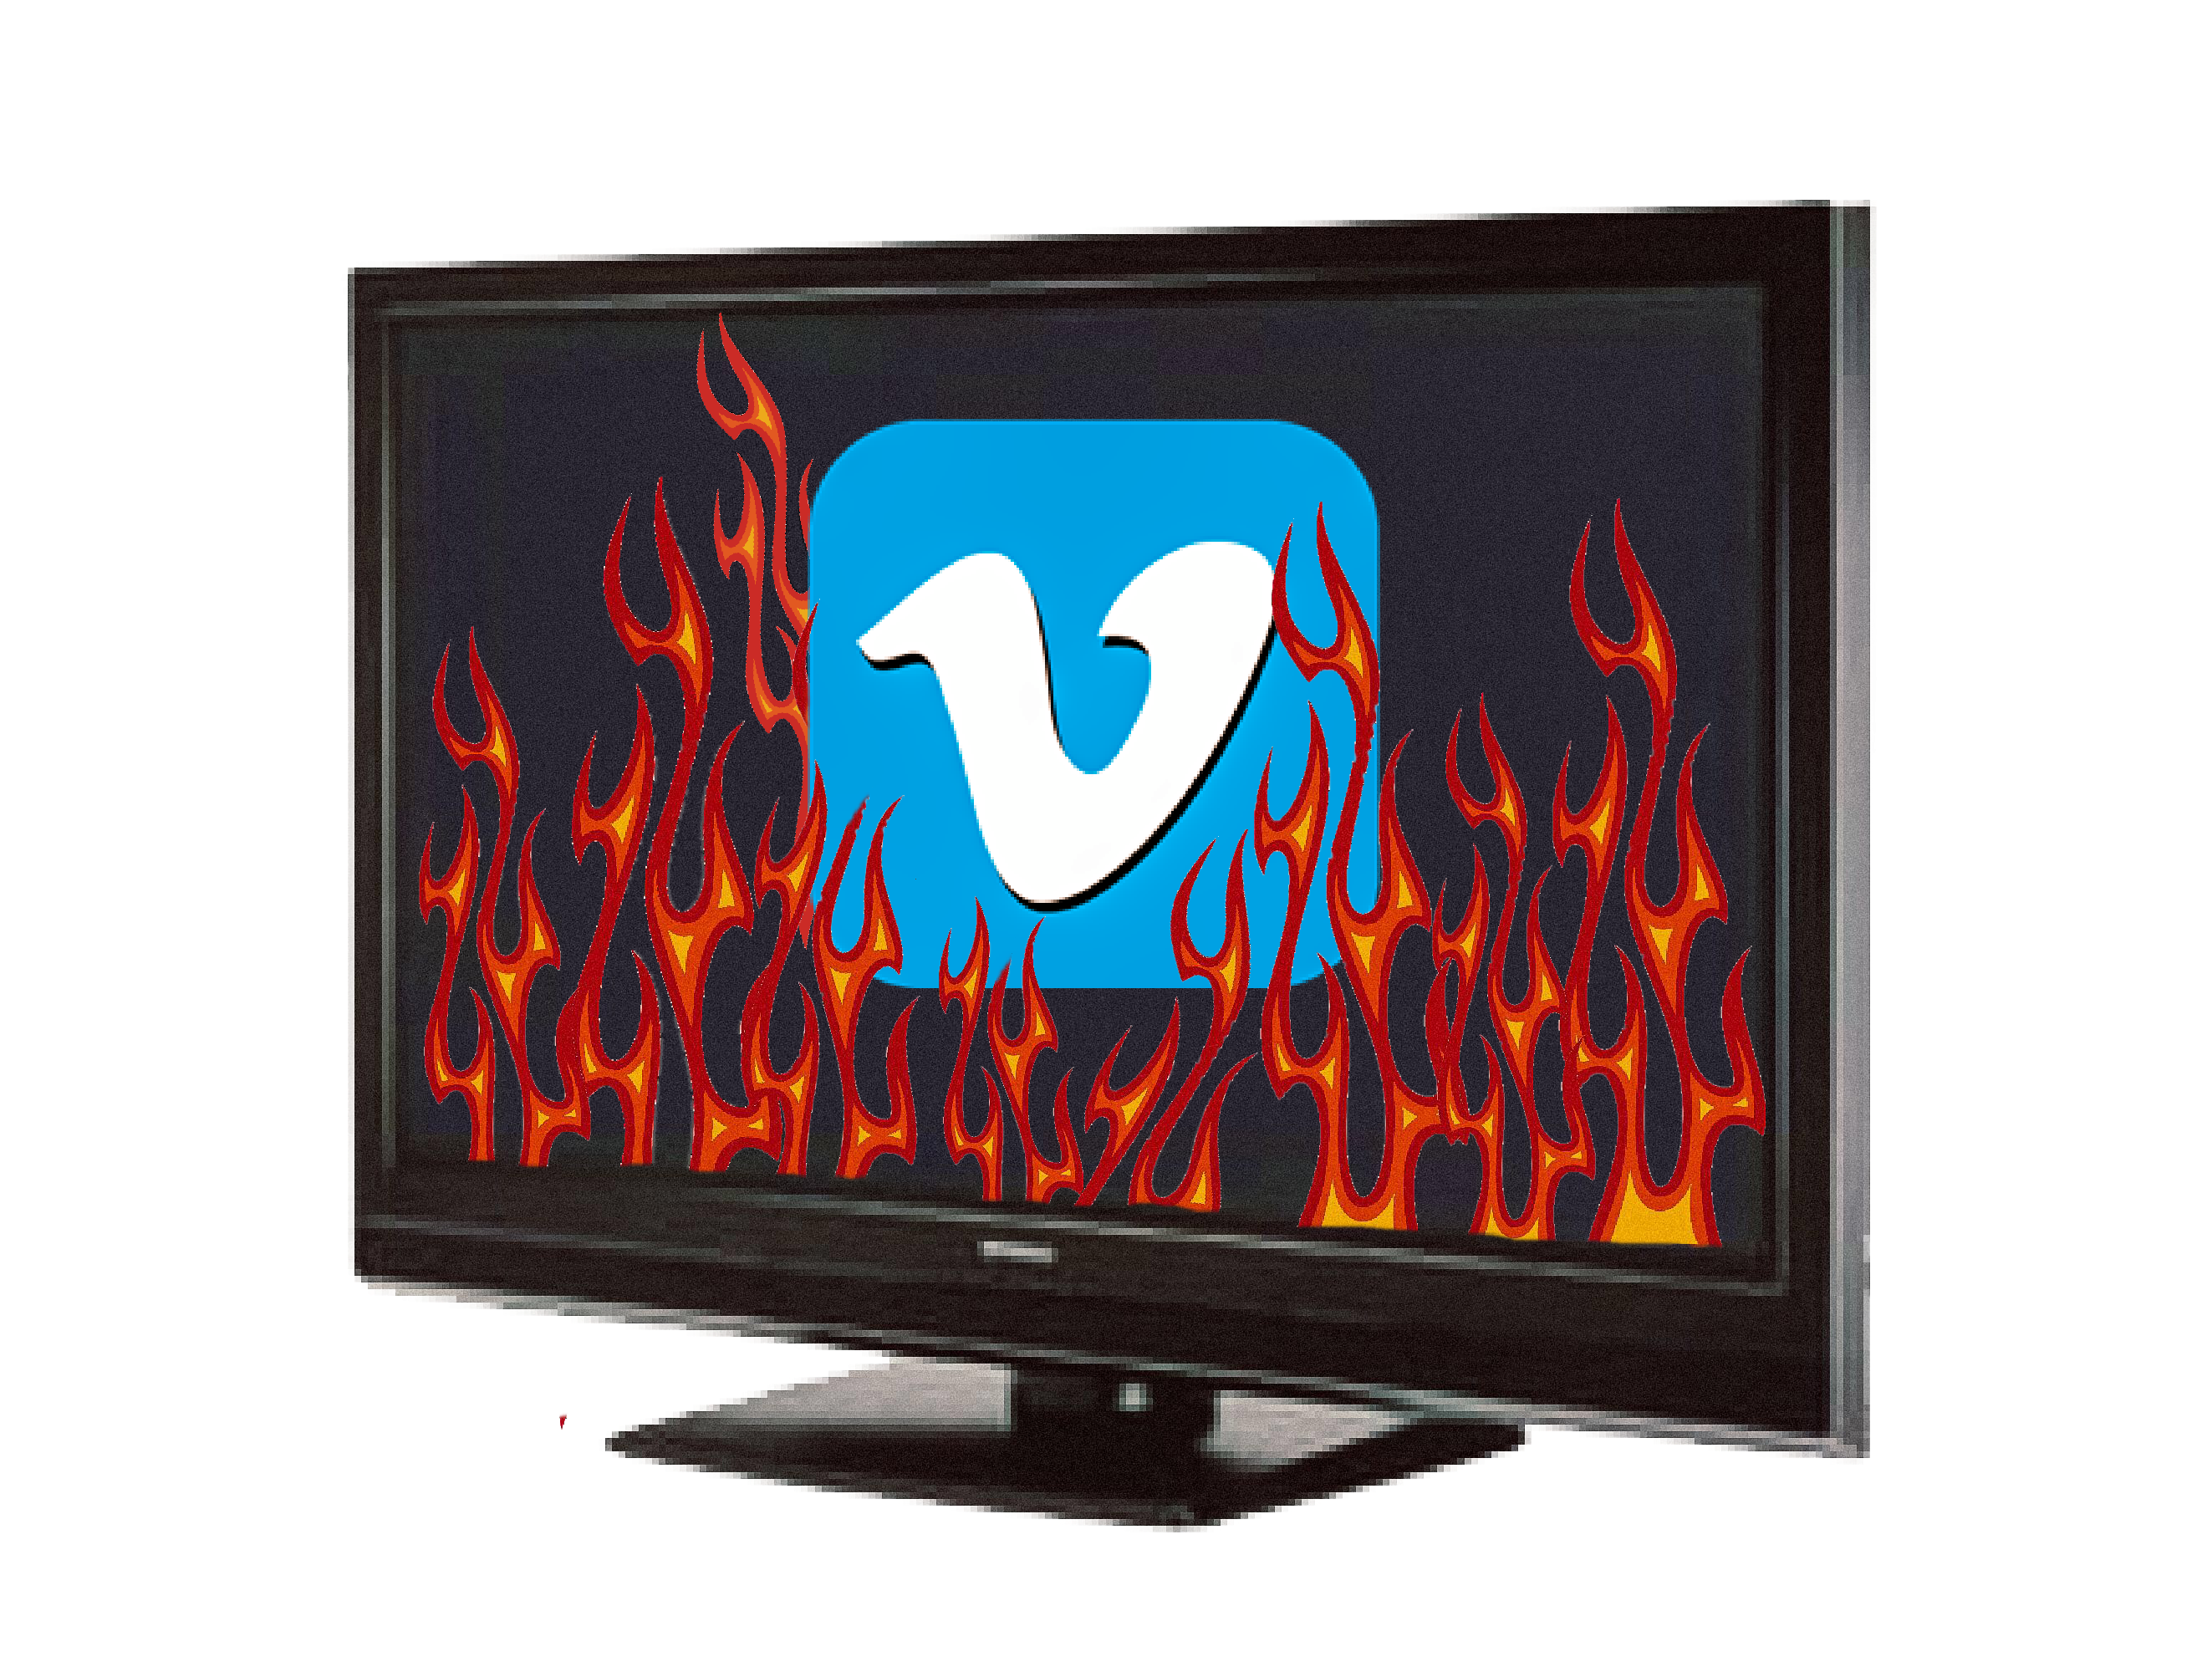 Le Vimeo de Jerry Tremblay